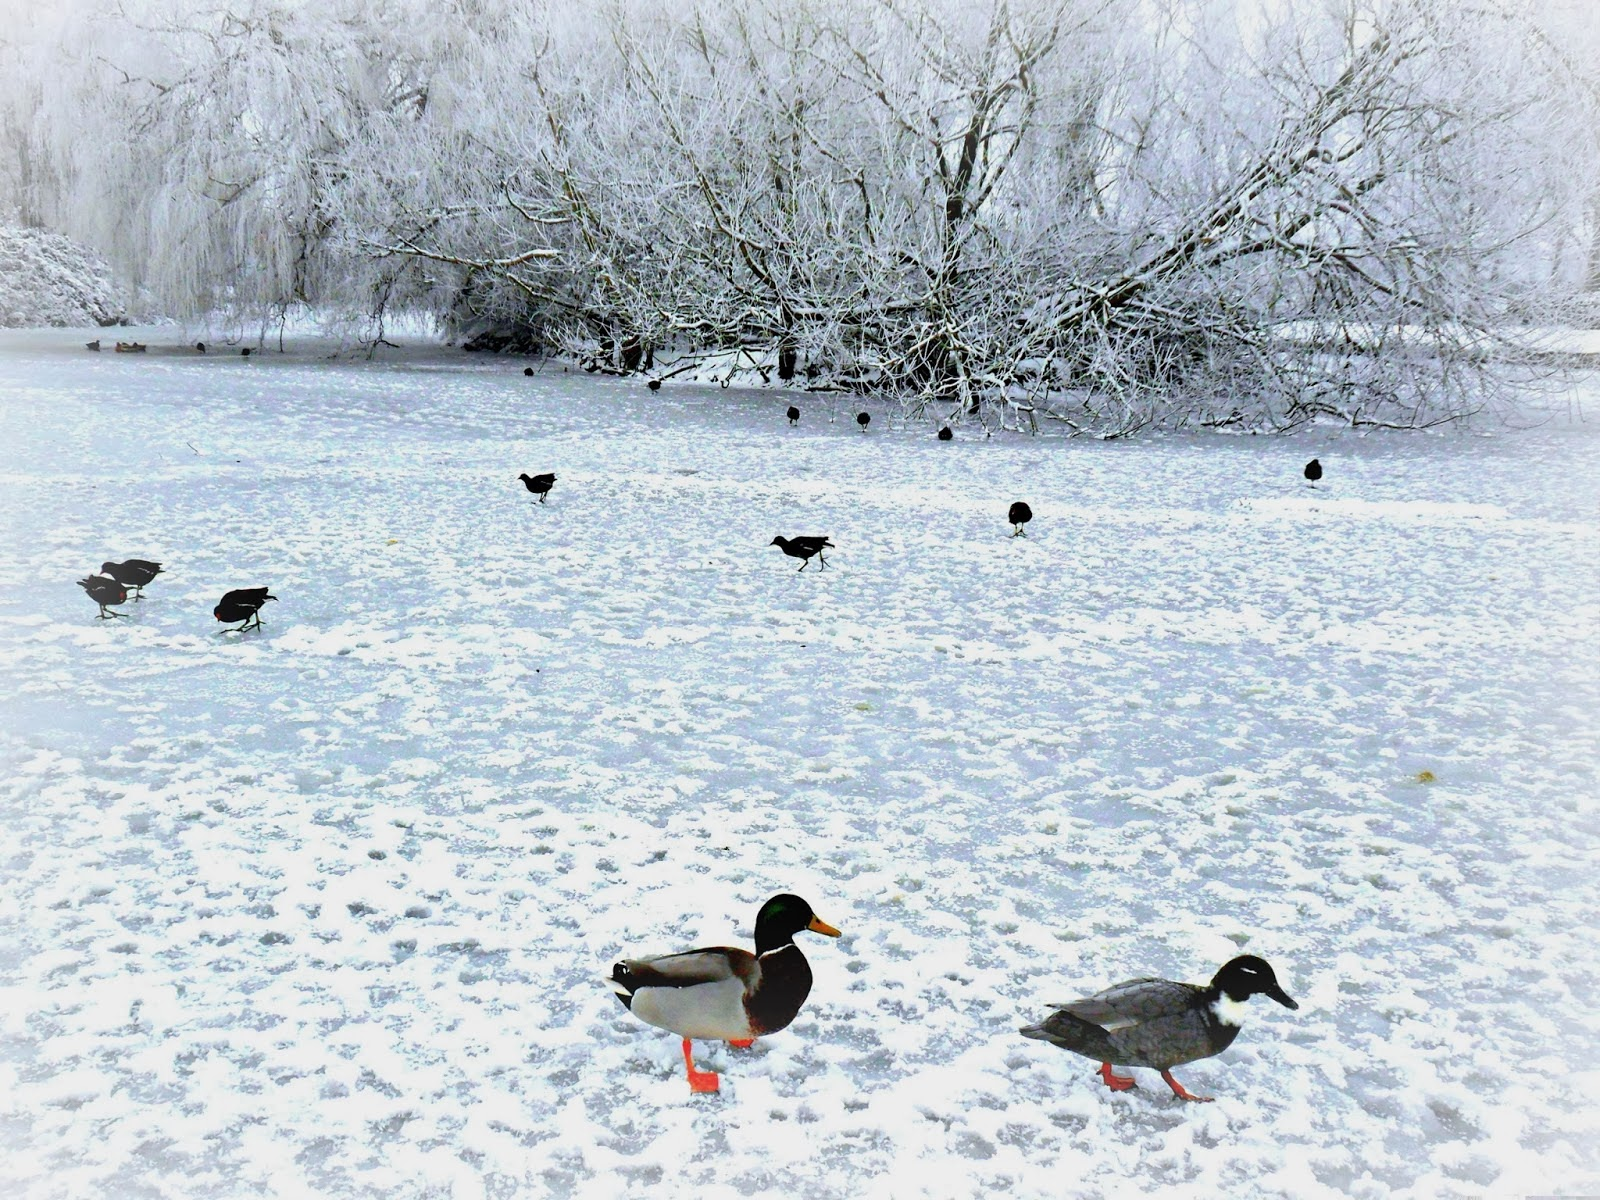 Ducks On Icy Pond In Winter